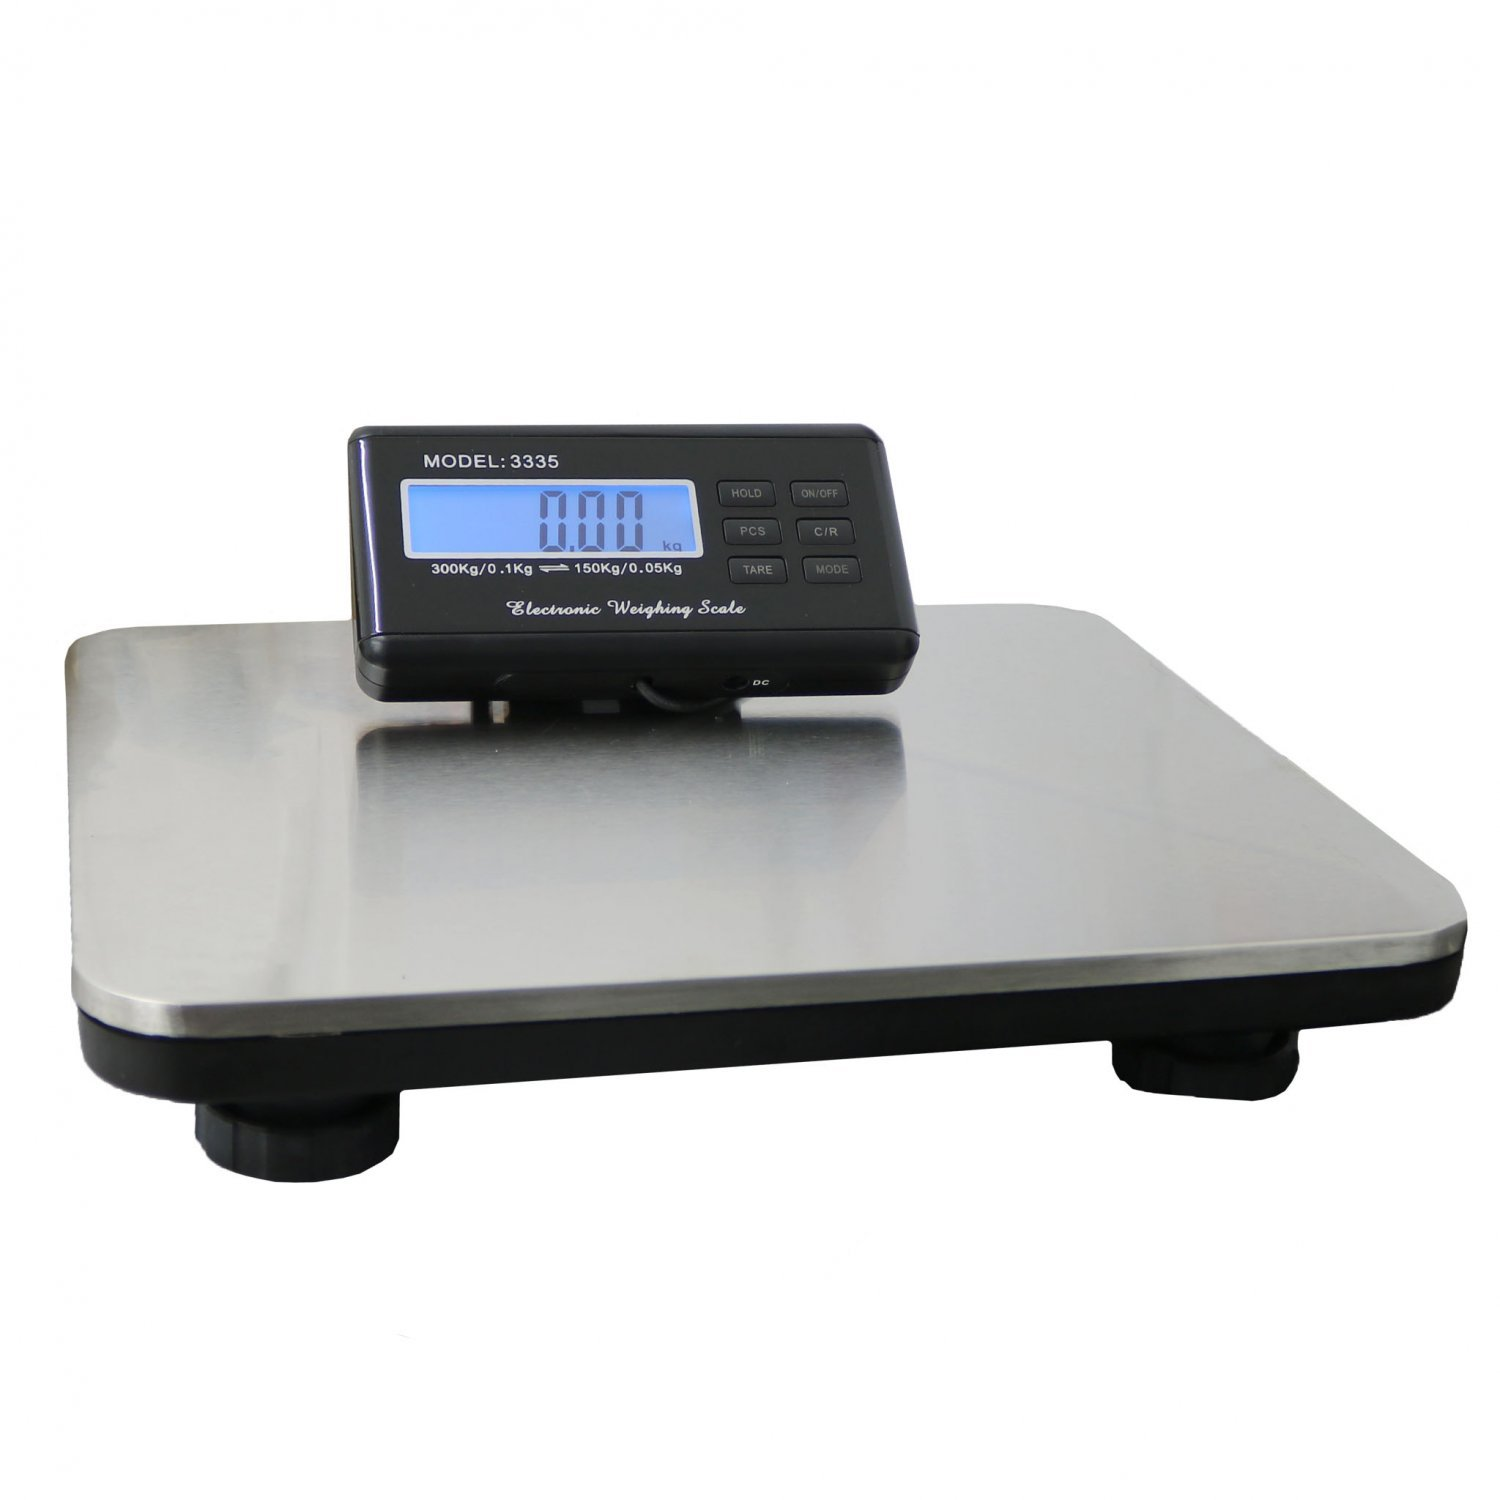 Heavy Duty Digital Postal Parcel Scales Weighing 150kg